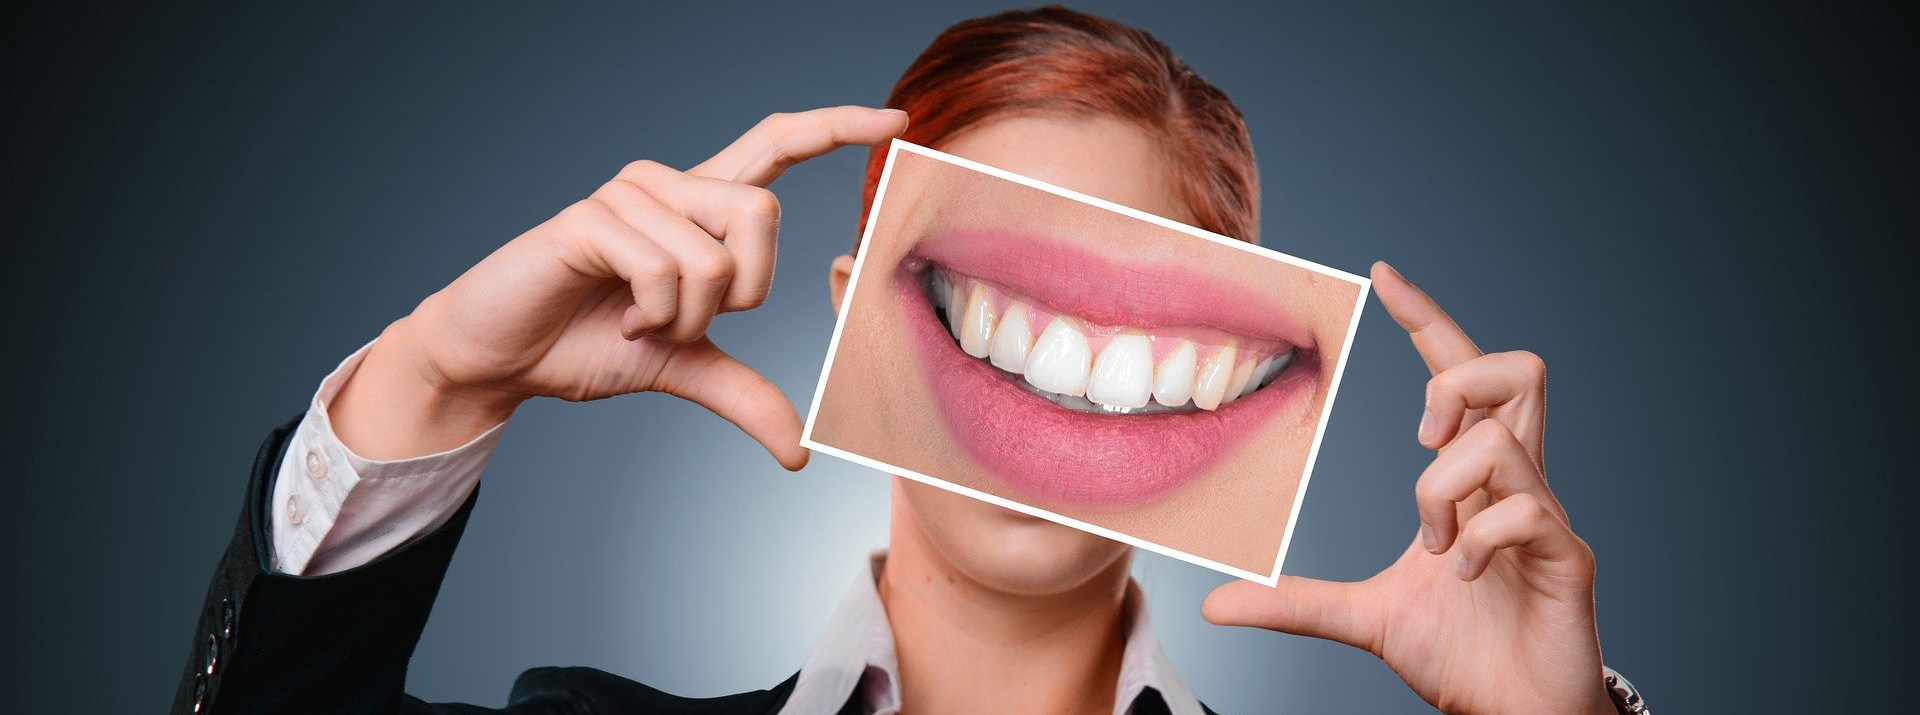 Welcomes you to Cape Fear Endodontics